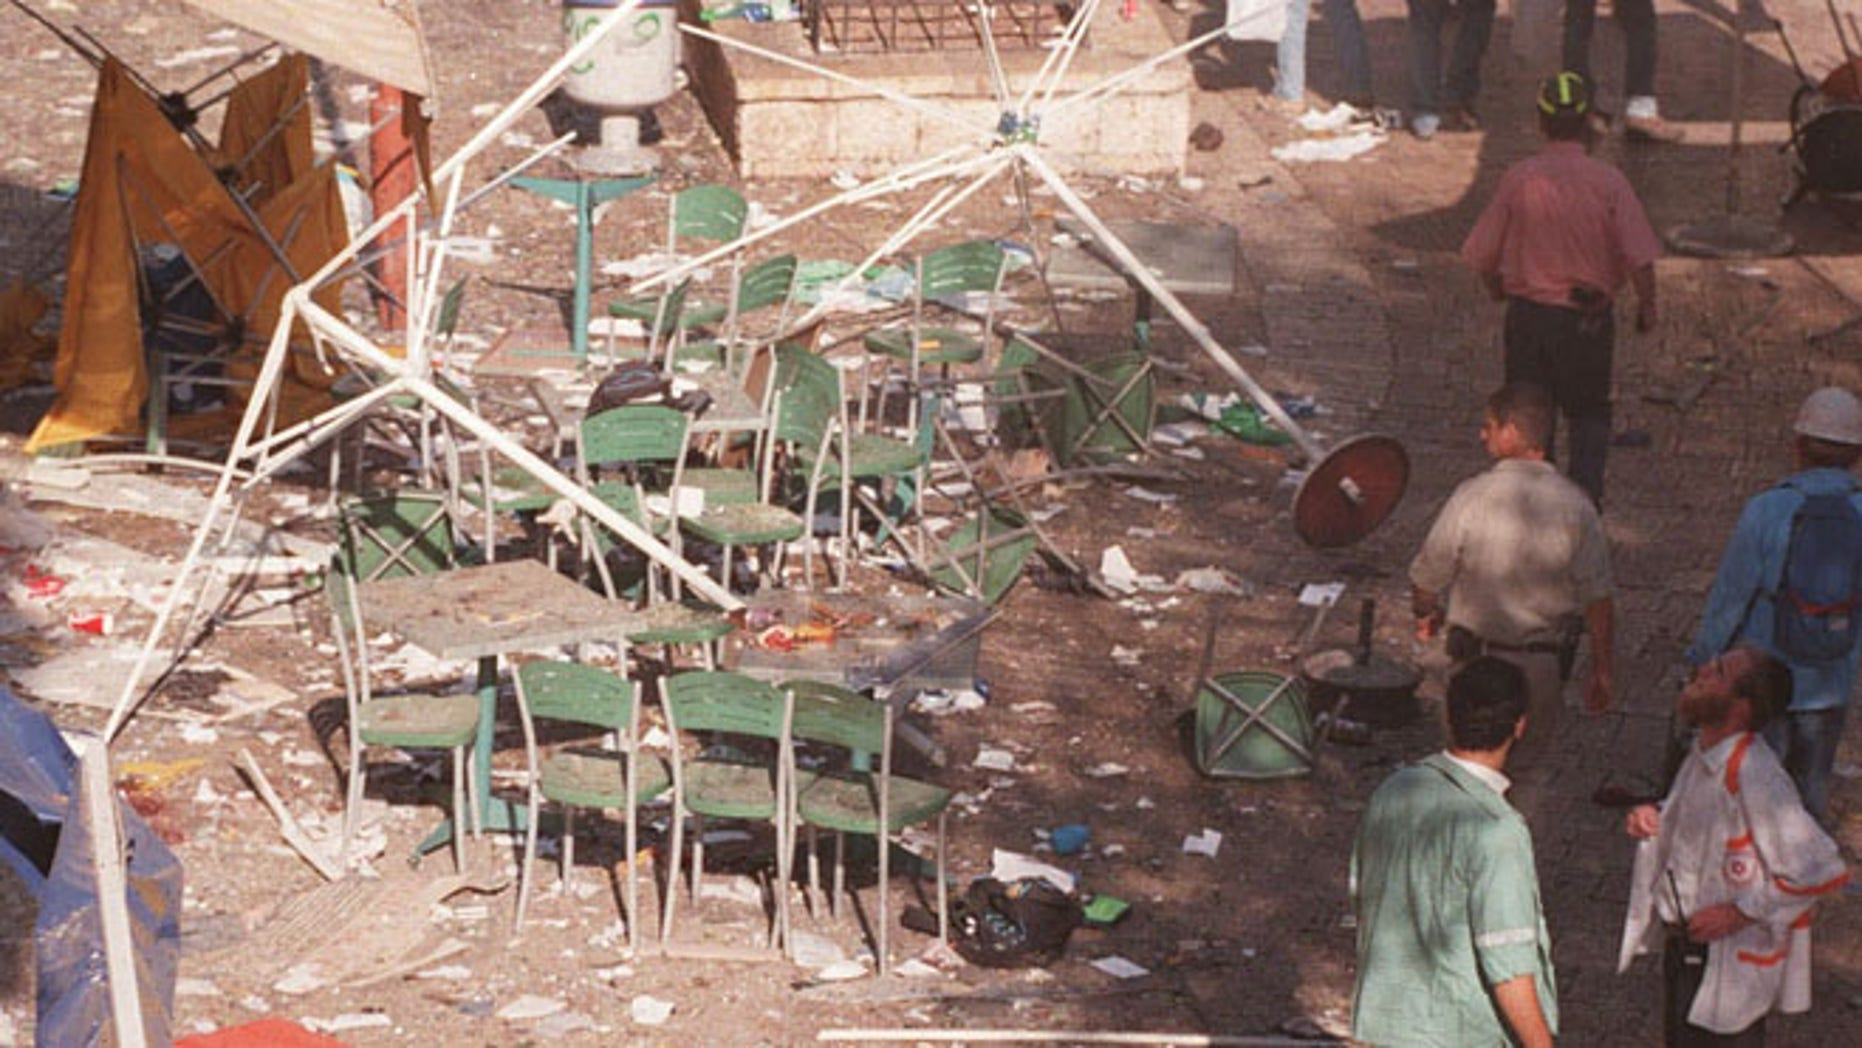 Sept. 4, 1997: Shown here is the site at Jerusalem's Ben Yehuda pedestrian mall following a triple explosion during a terror attack.